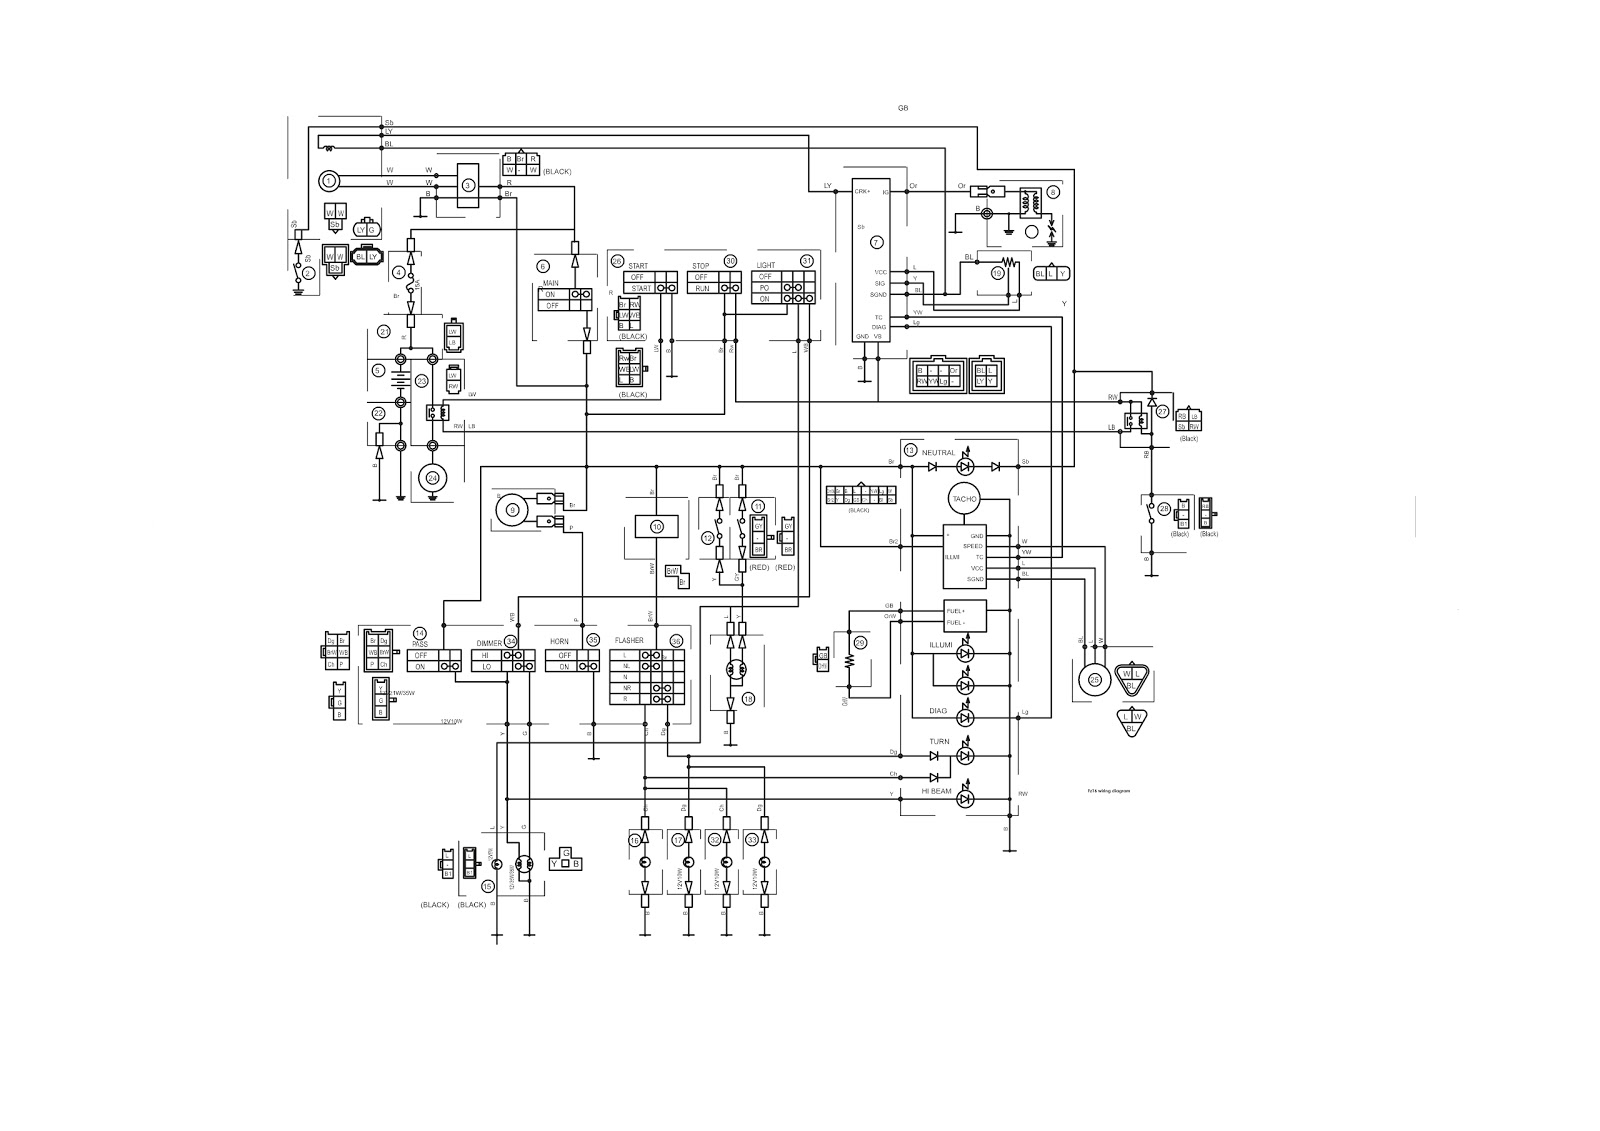 9 Lead Motor Wiring Diagram. Wiring. Wiring Diagram Images